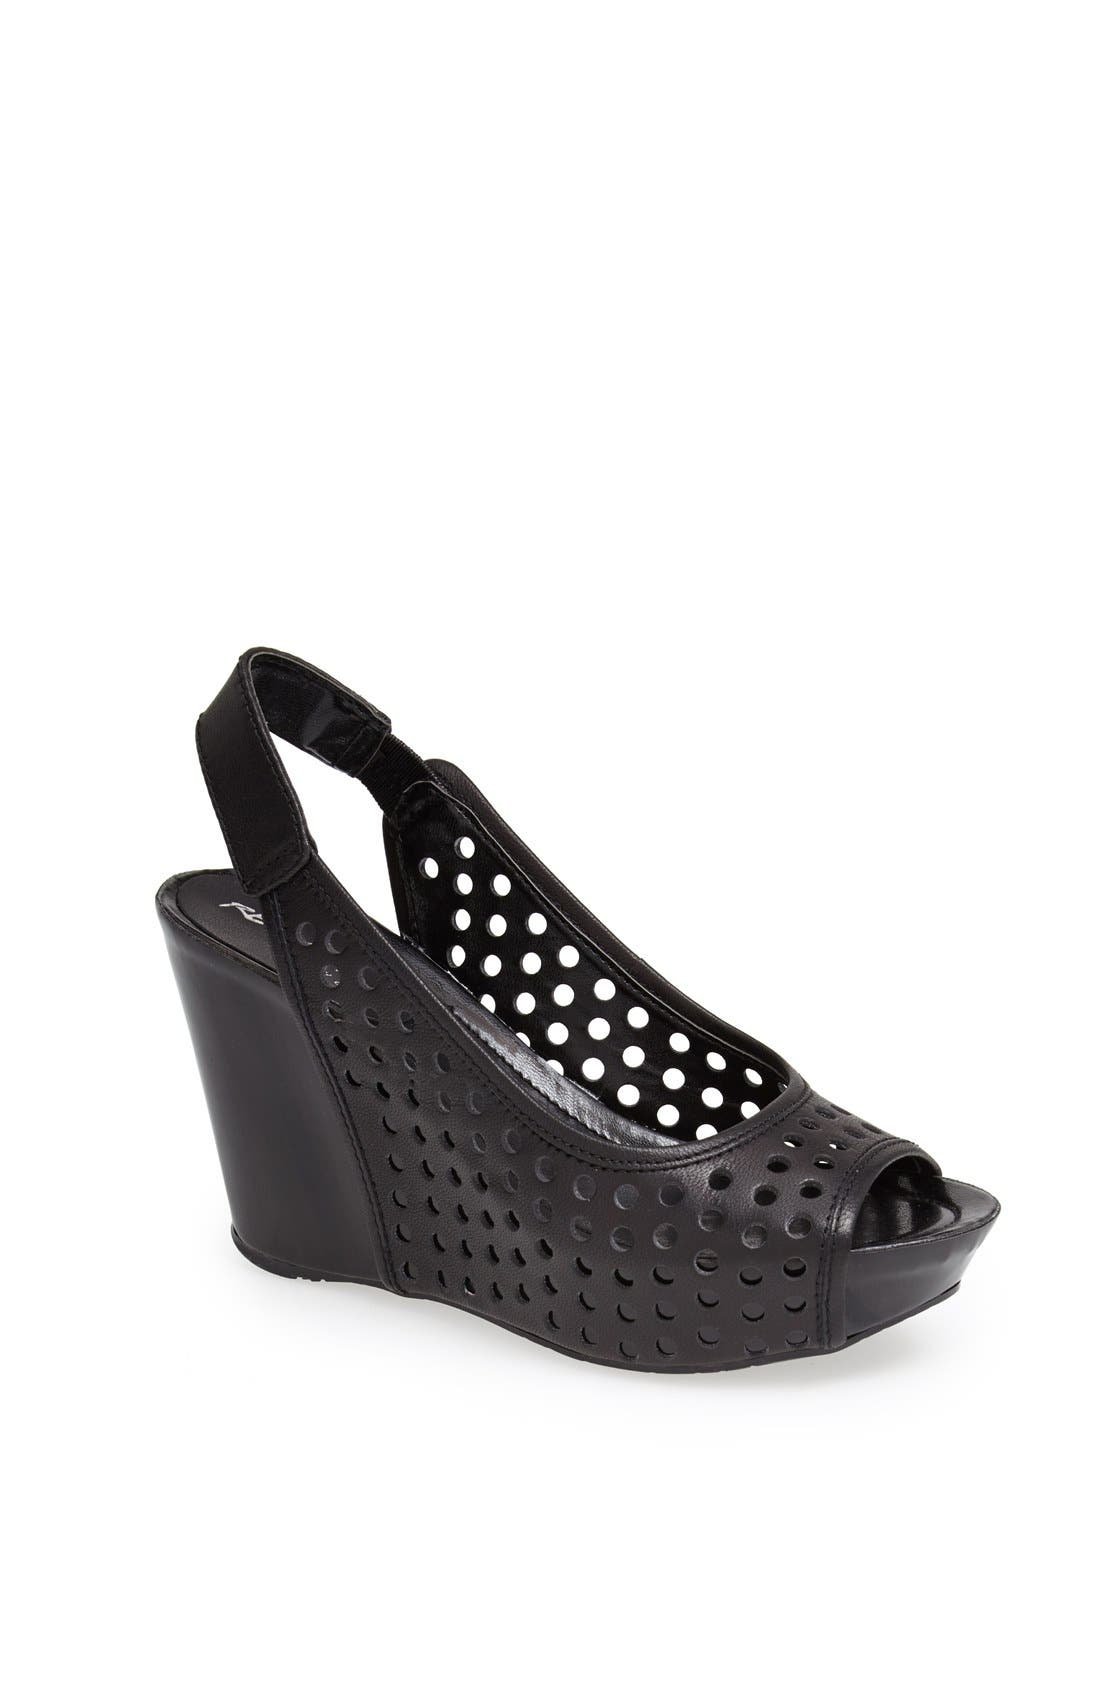 Alternate Image 1 Selected - Kenneth Cole Reaction 'Soley Roller 3' Perforated Slingback Sandal